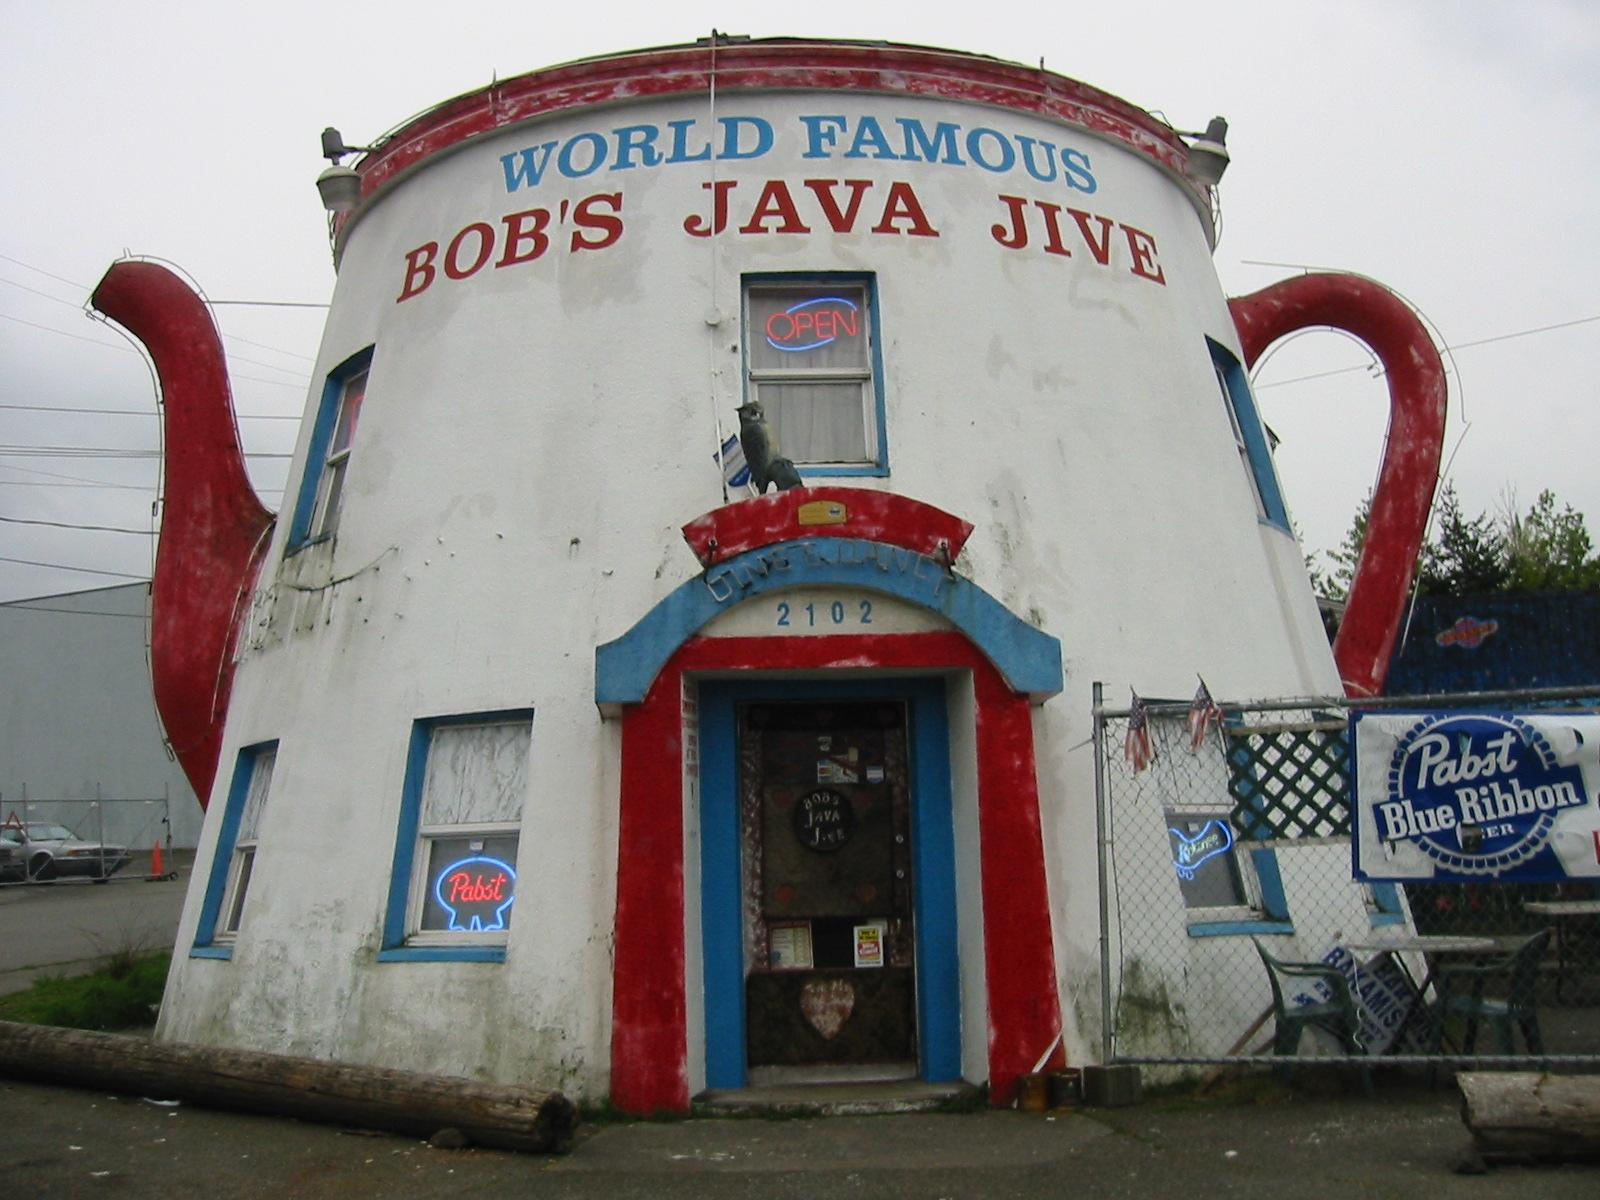 Bob's Java Jive has been around since 1927, making it a whopping 90 years old. (Image: https://flic.kr/p/Nq76)